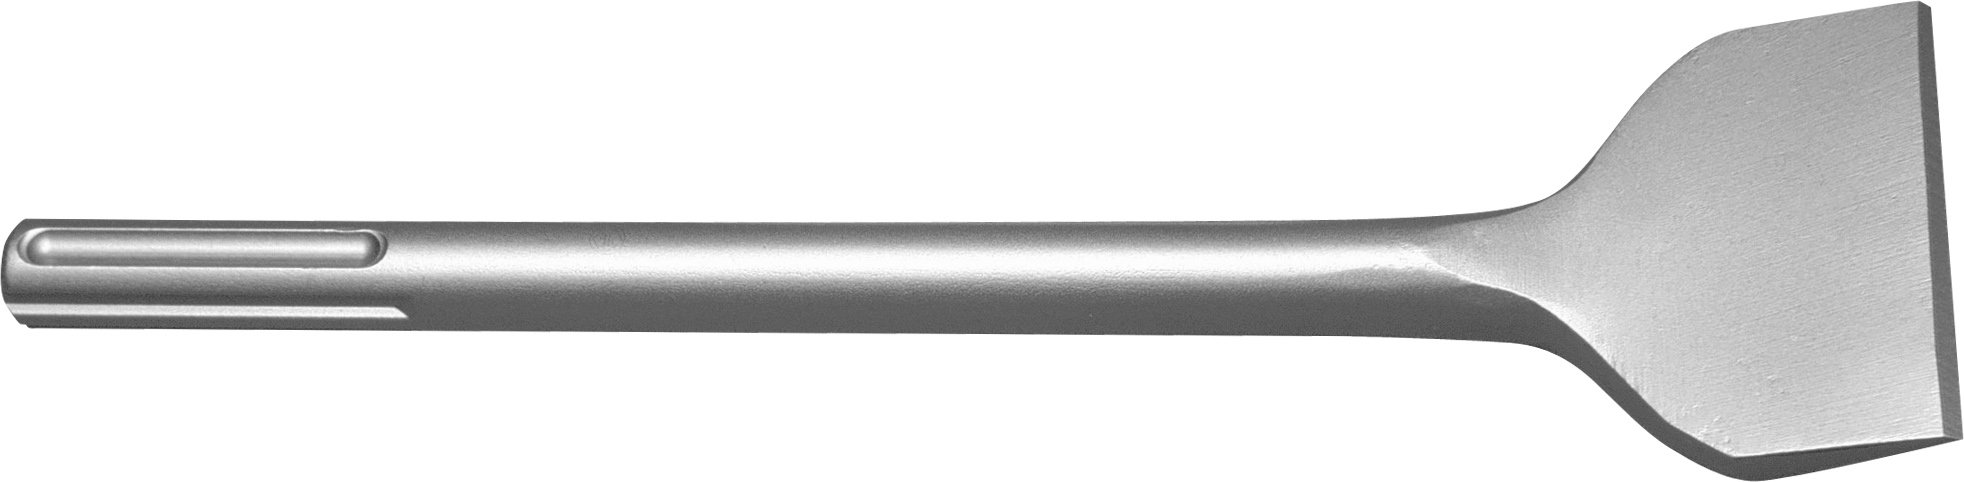 Champion Chisel, 12-Inch Long, 3-Inch Wide Bent SDS-MAX Chisel, Single Bevel